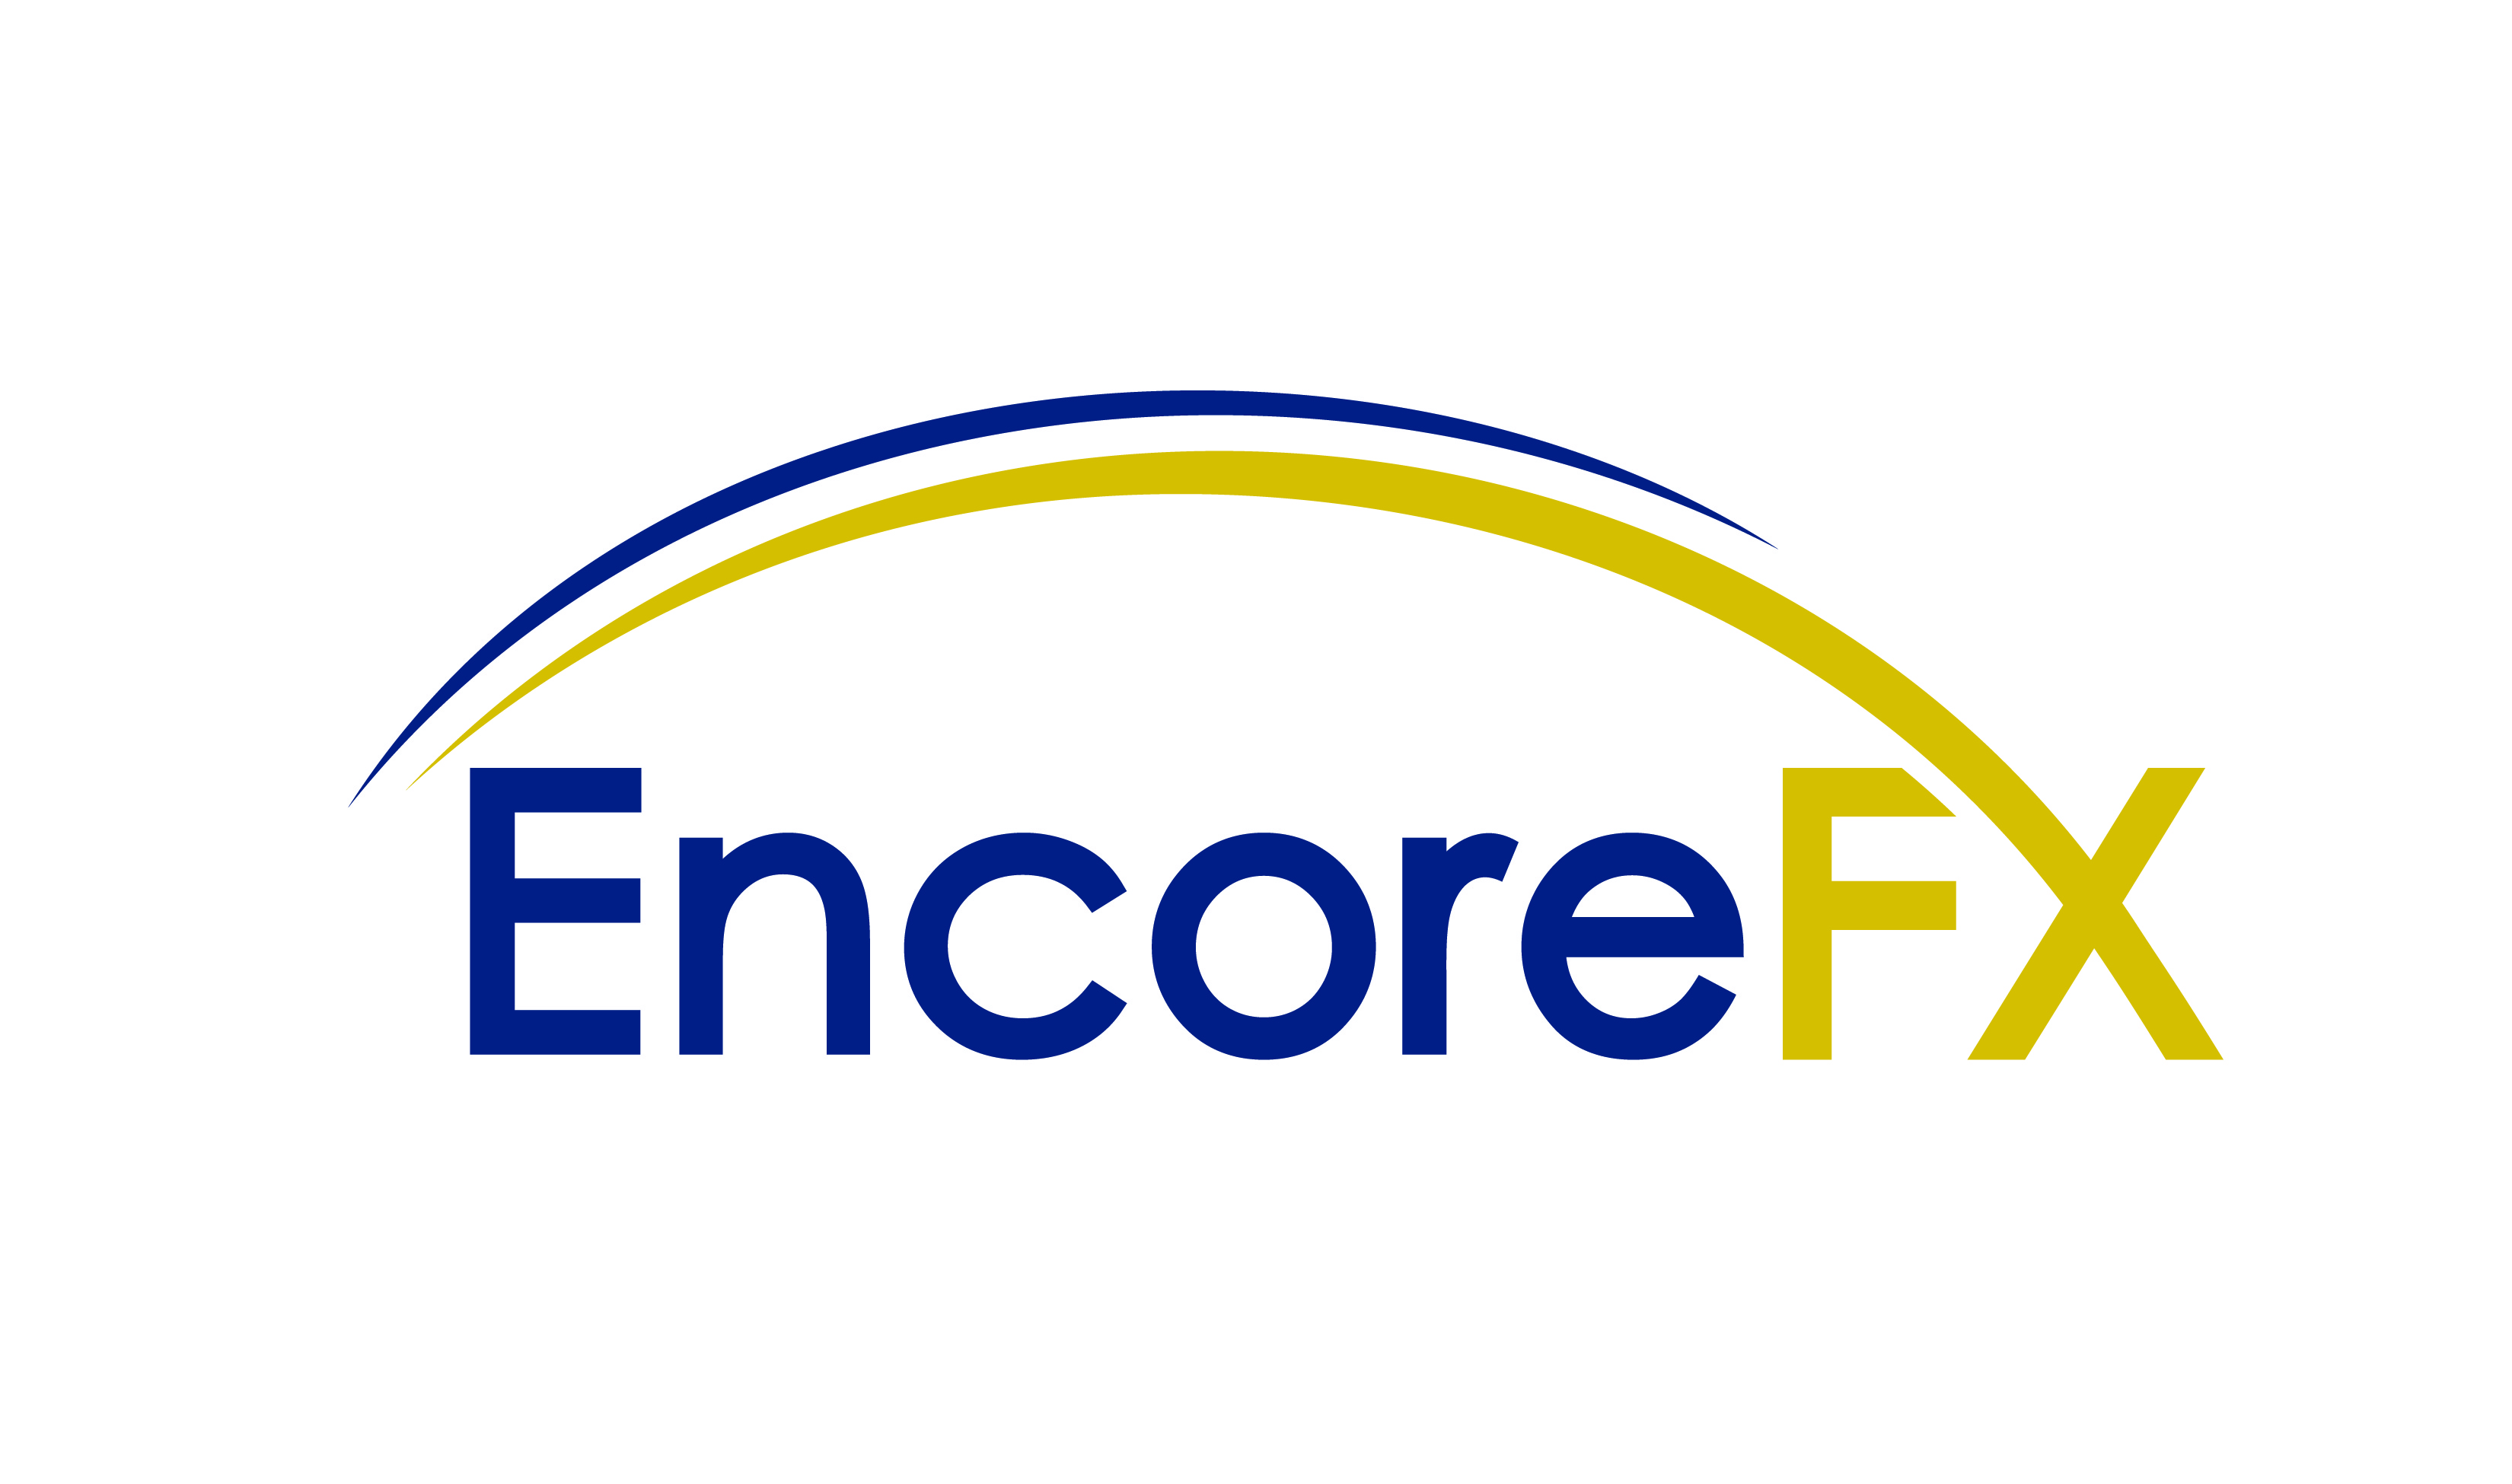 EncoreFx_logo_colour.jpg